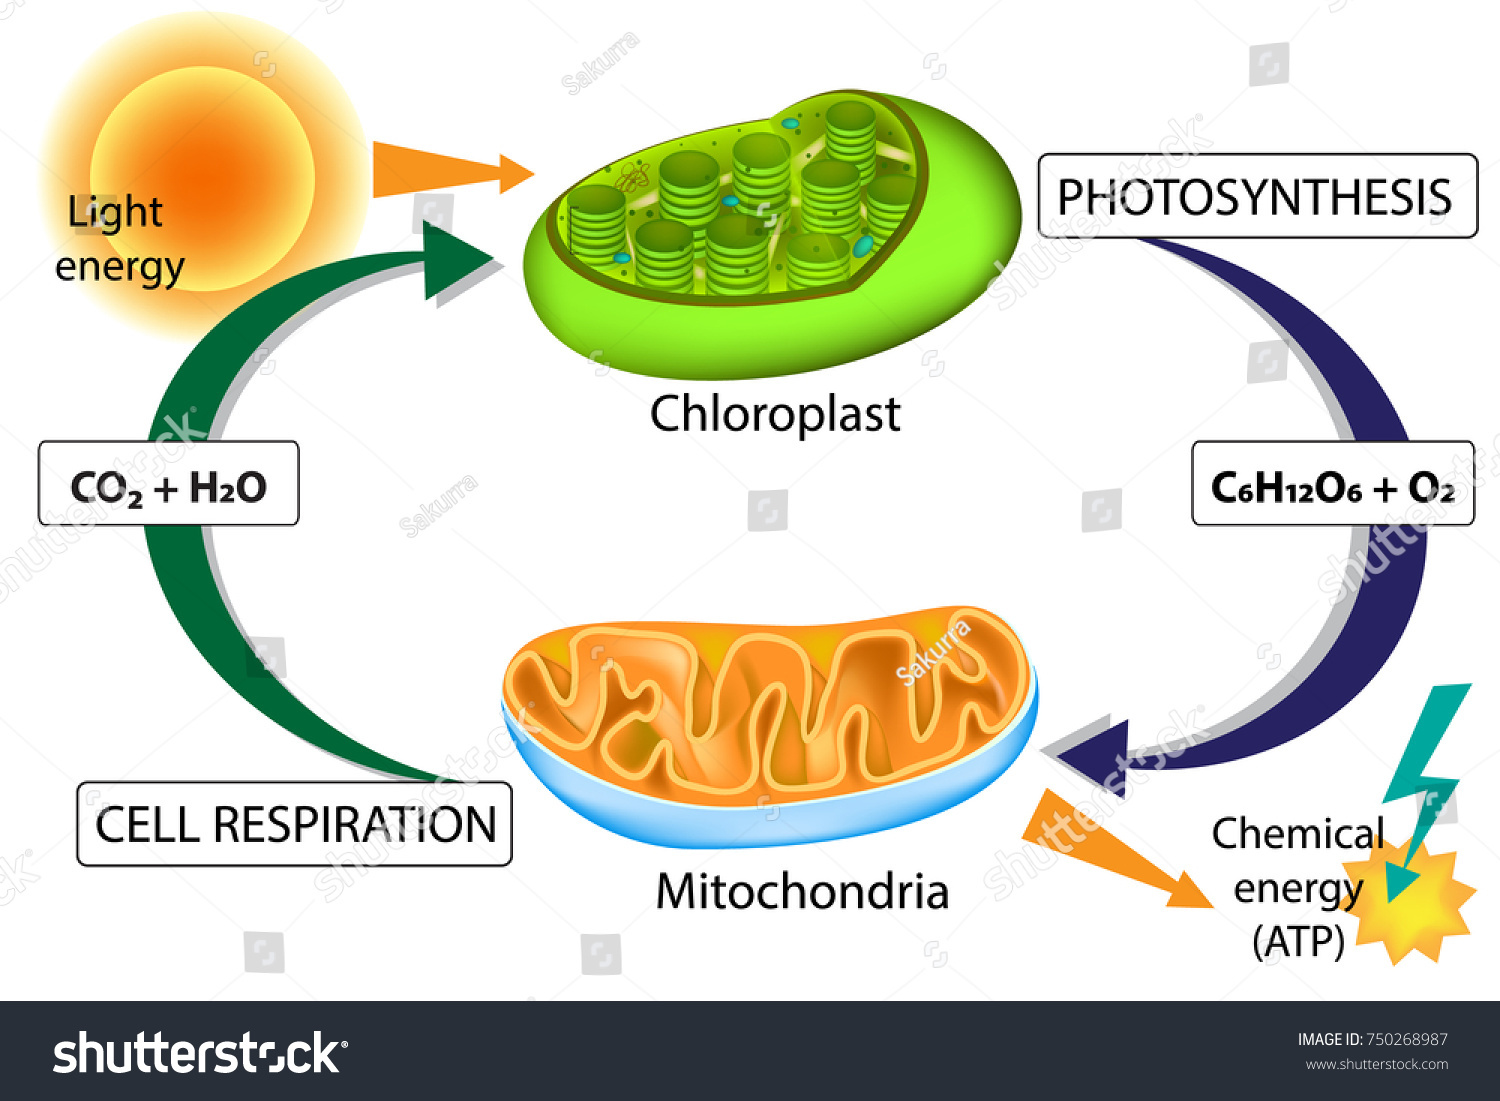 Photosynthesis And Respiration Experibox